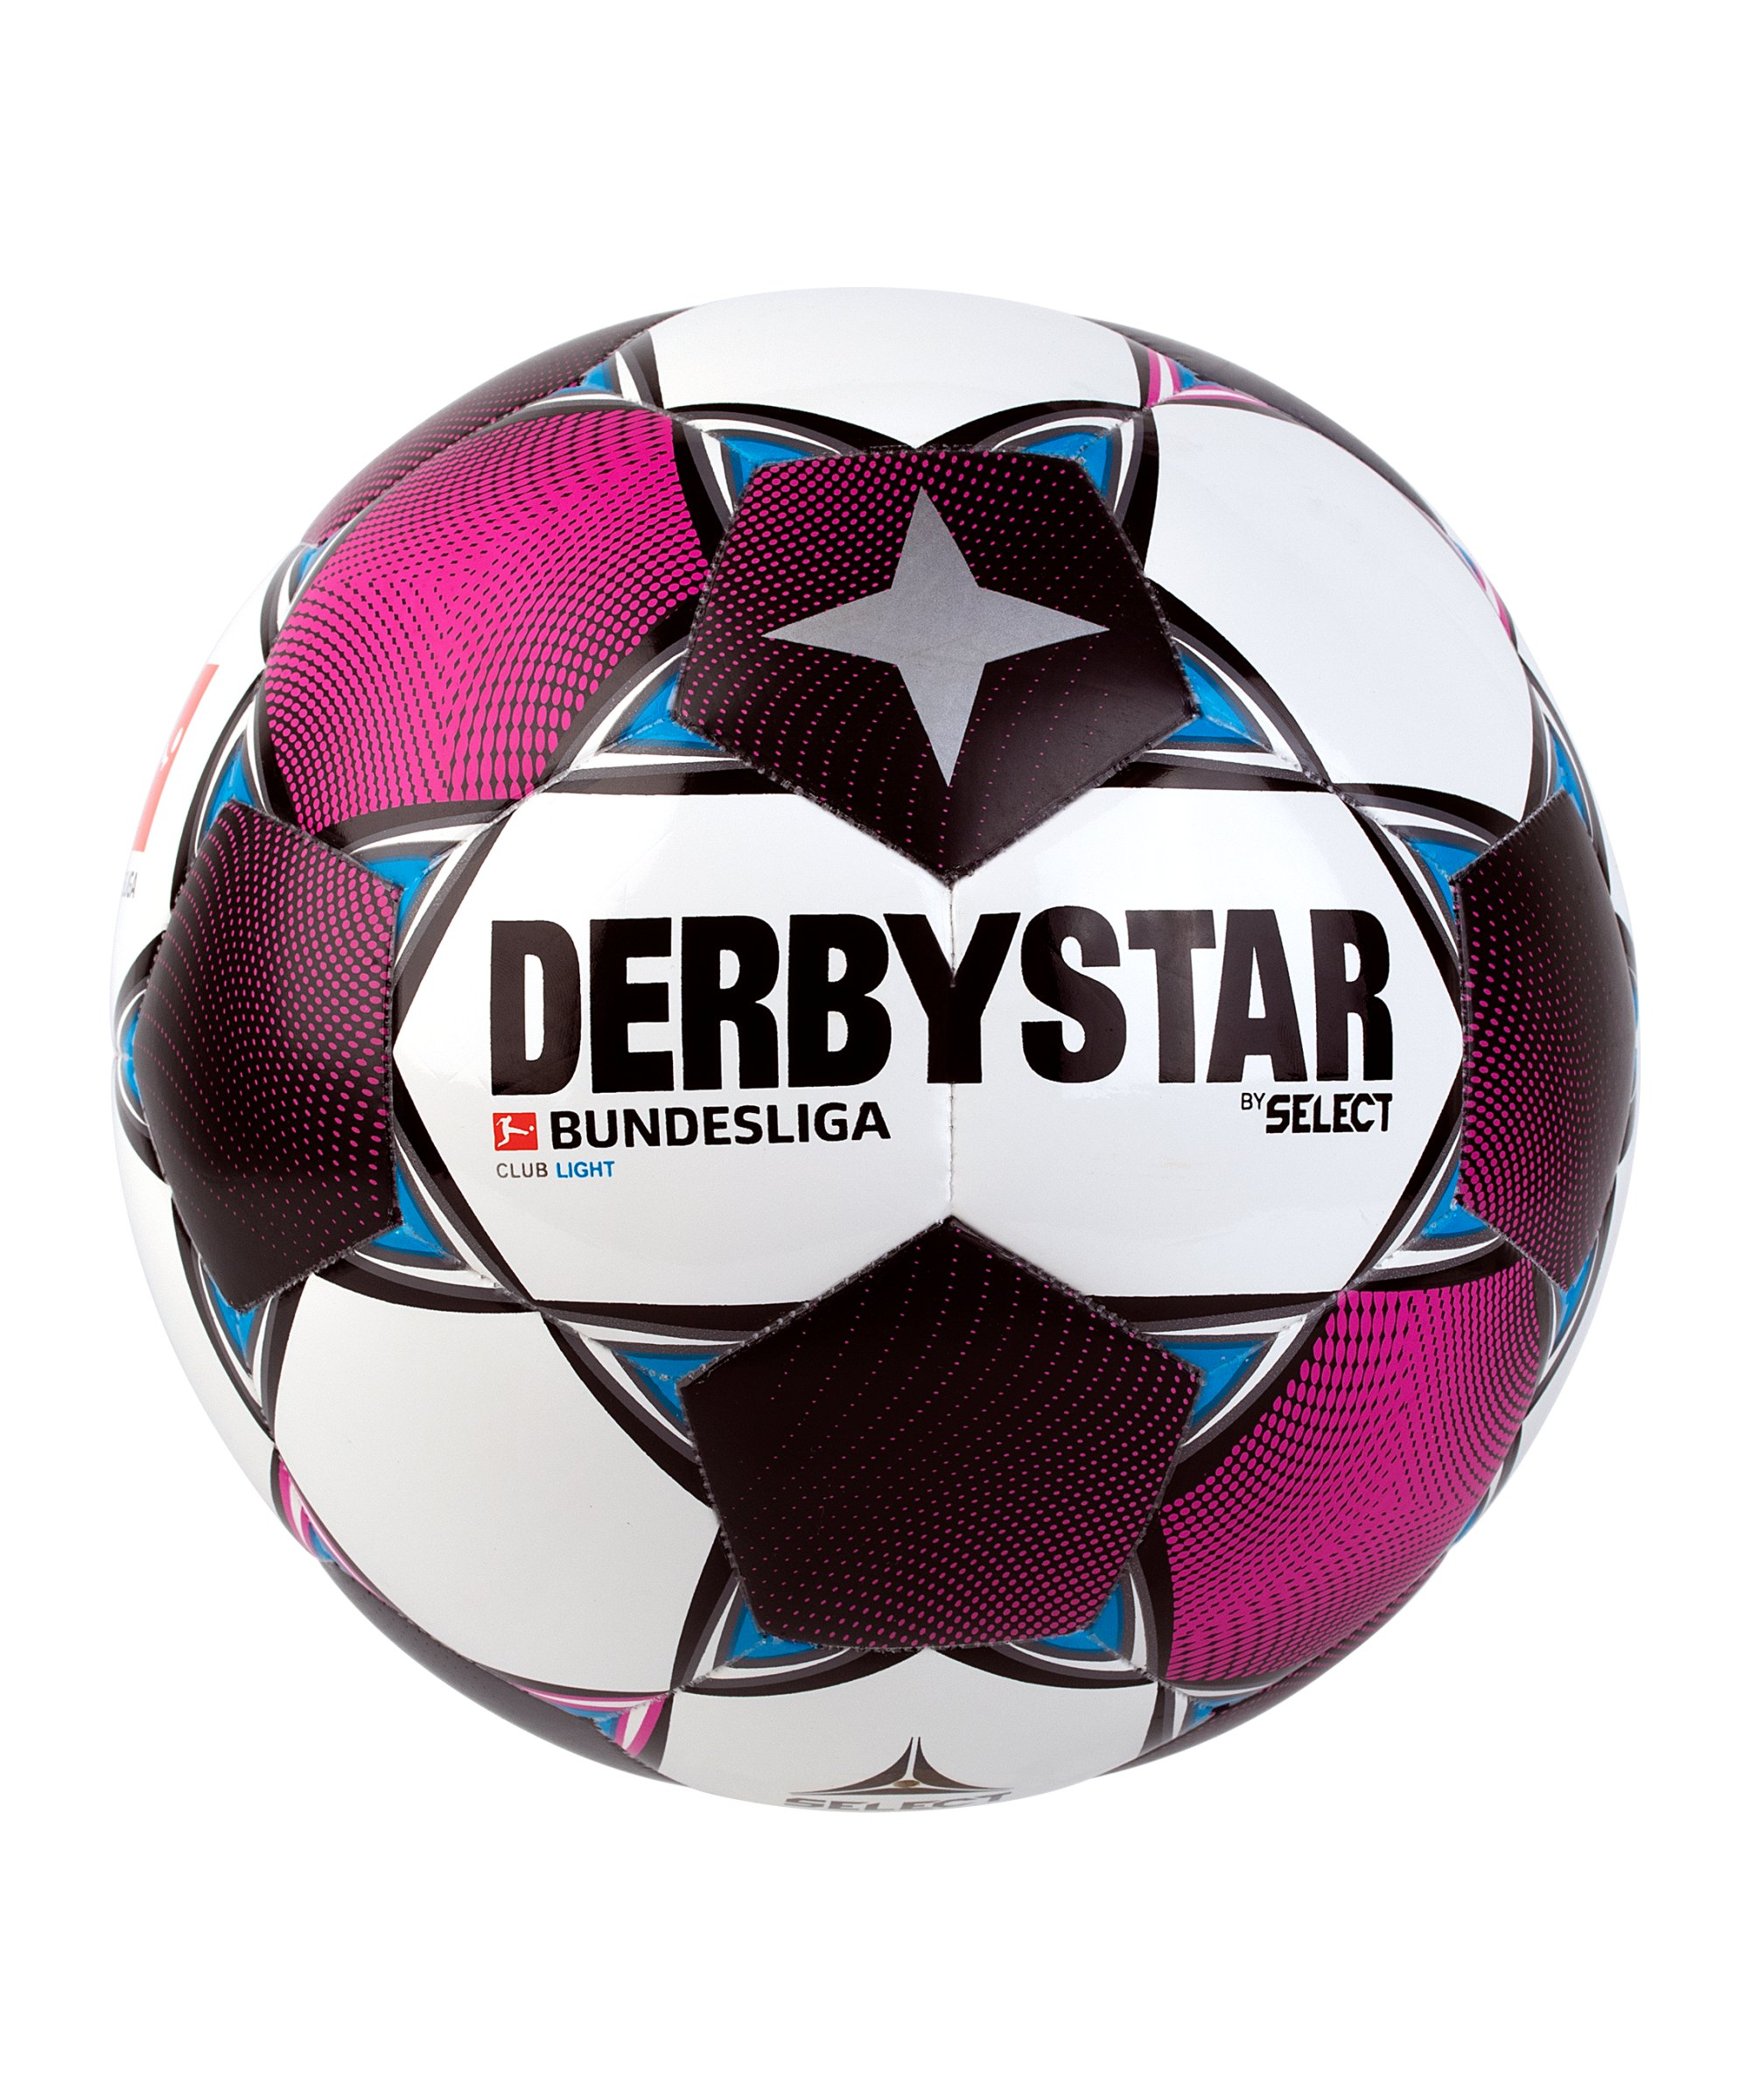 Derbystar Bundesliga Club Light 350 Gramm Trainingsball Weiss F020 - weiss